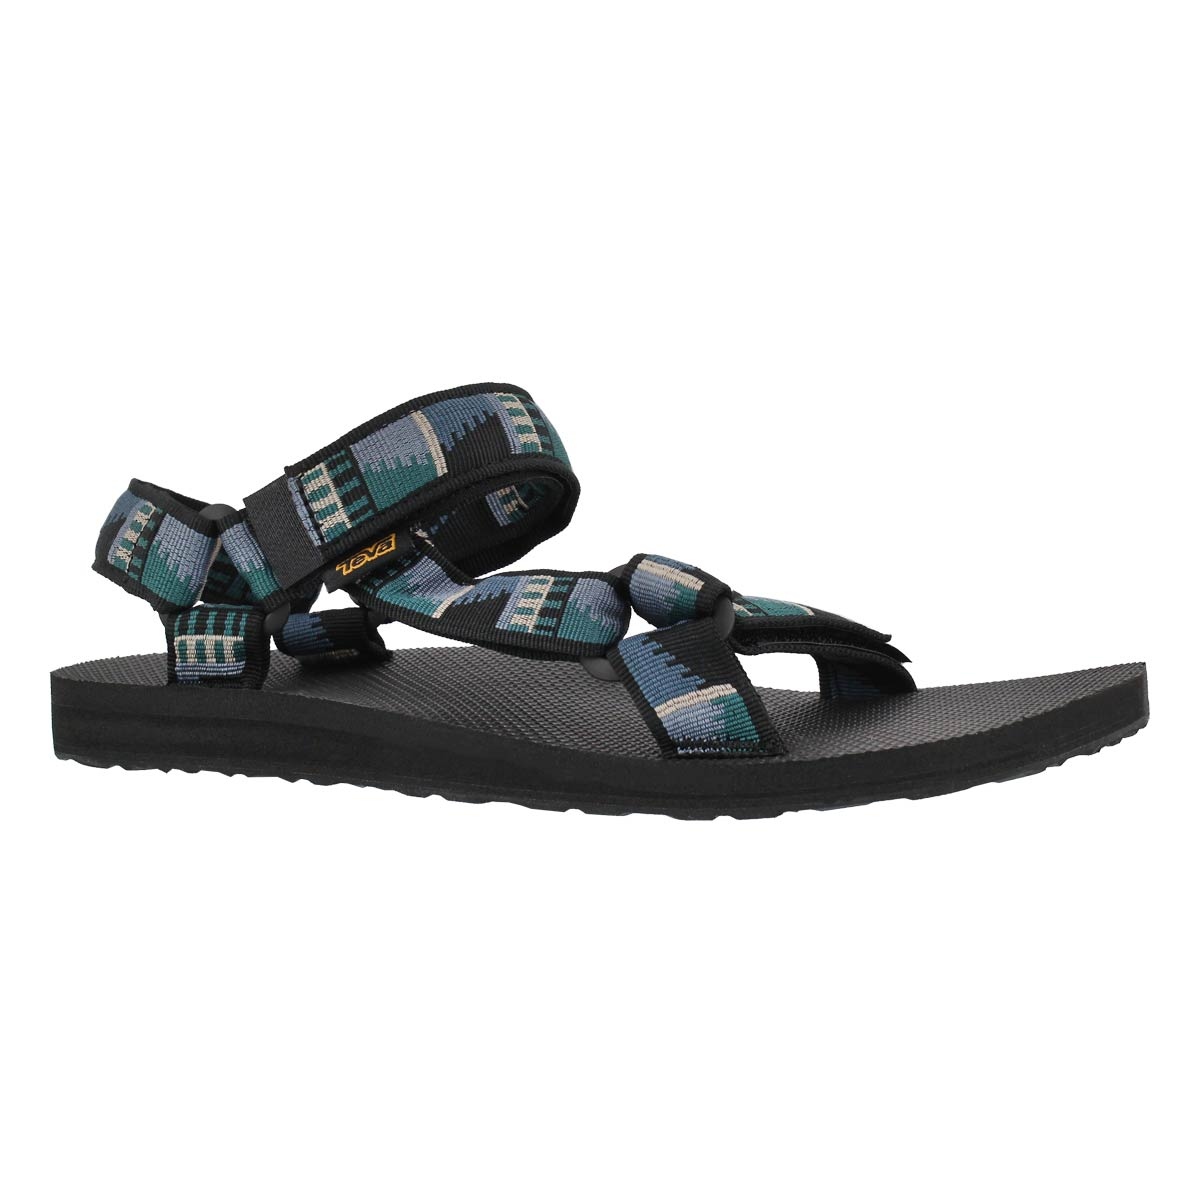 Men's ORIGINAL UNIVERSAL peaks black sandals